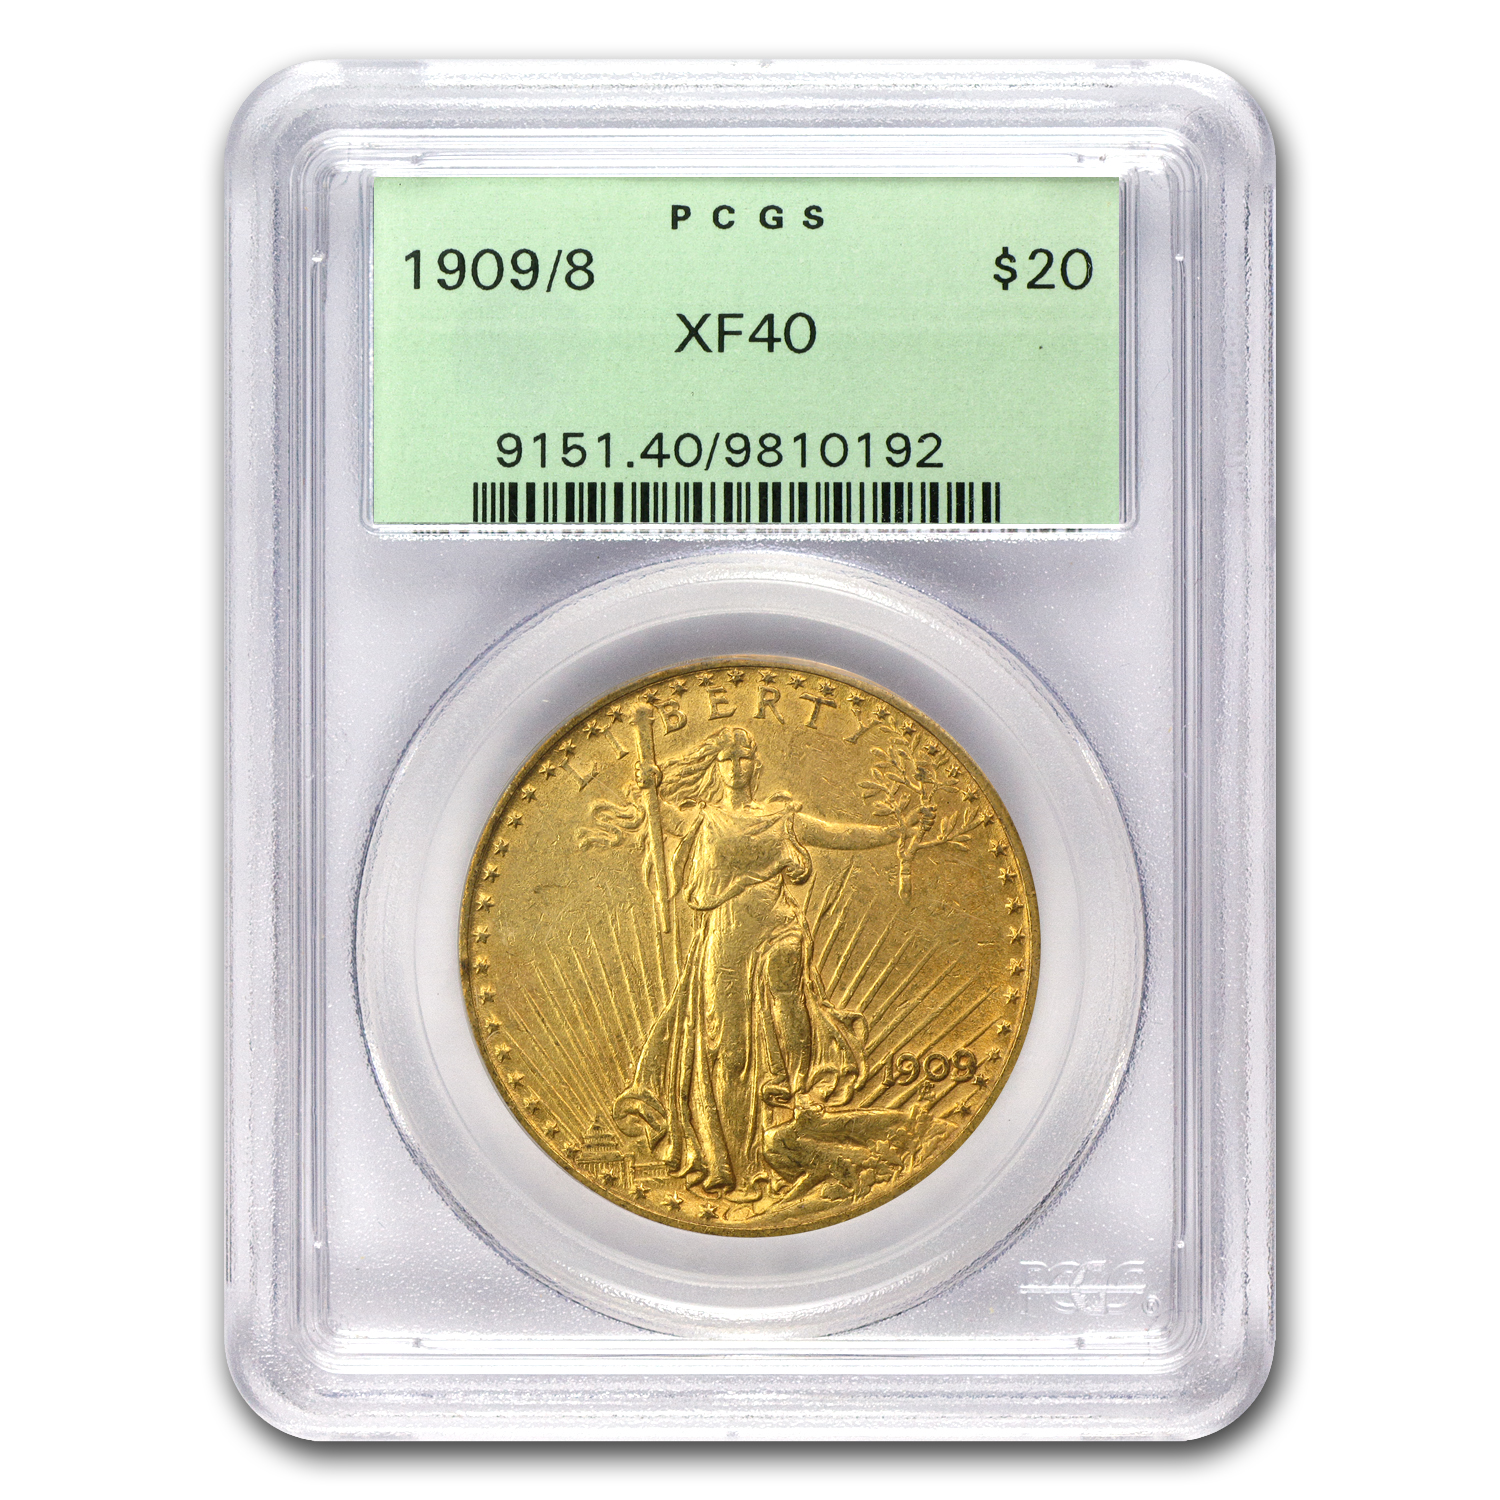 1909/8 $20 St. Gaudens Gold Double Eagle Overdate XF-40 PCGS